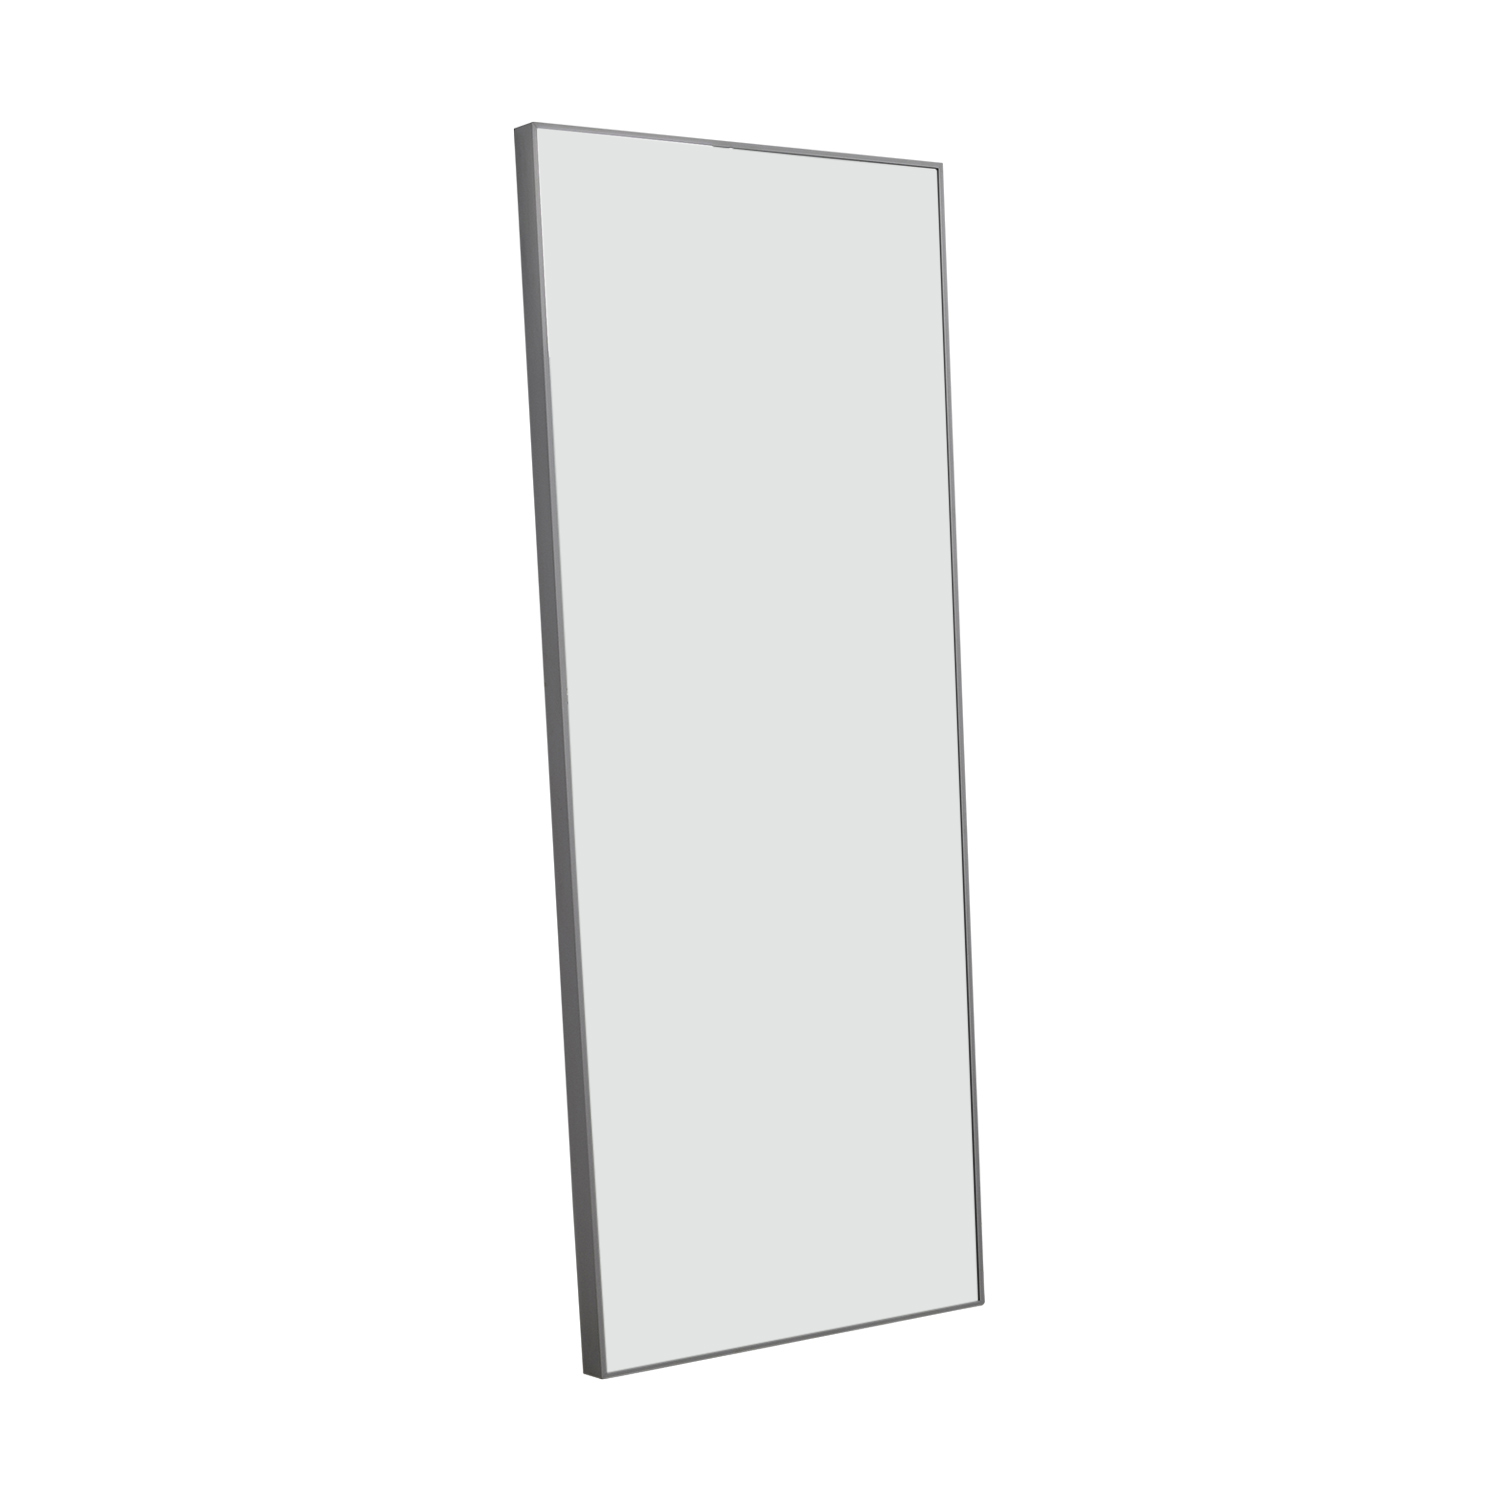 Floor Mirror with Chrome Border dimensions